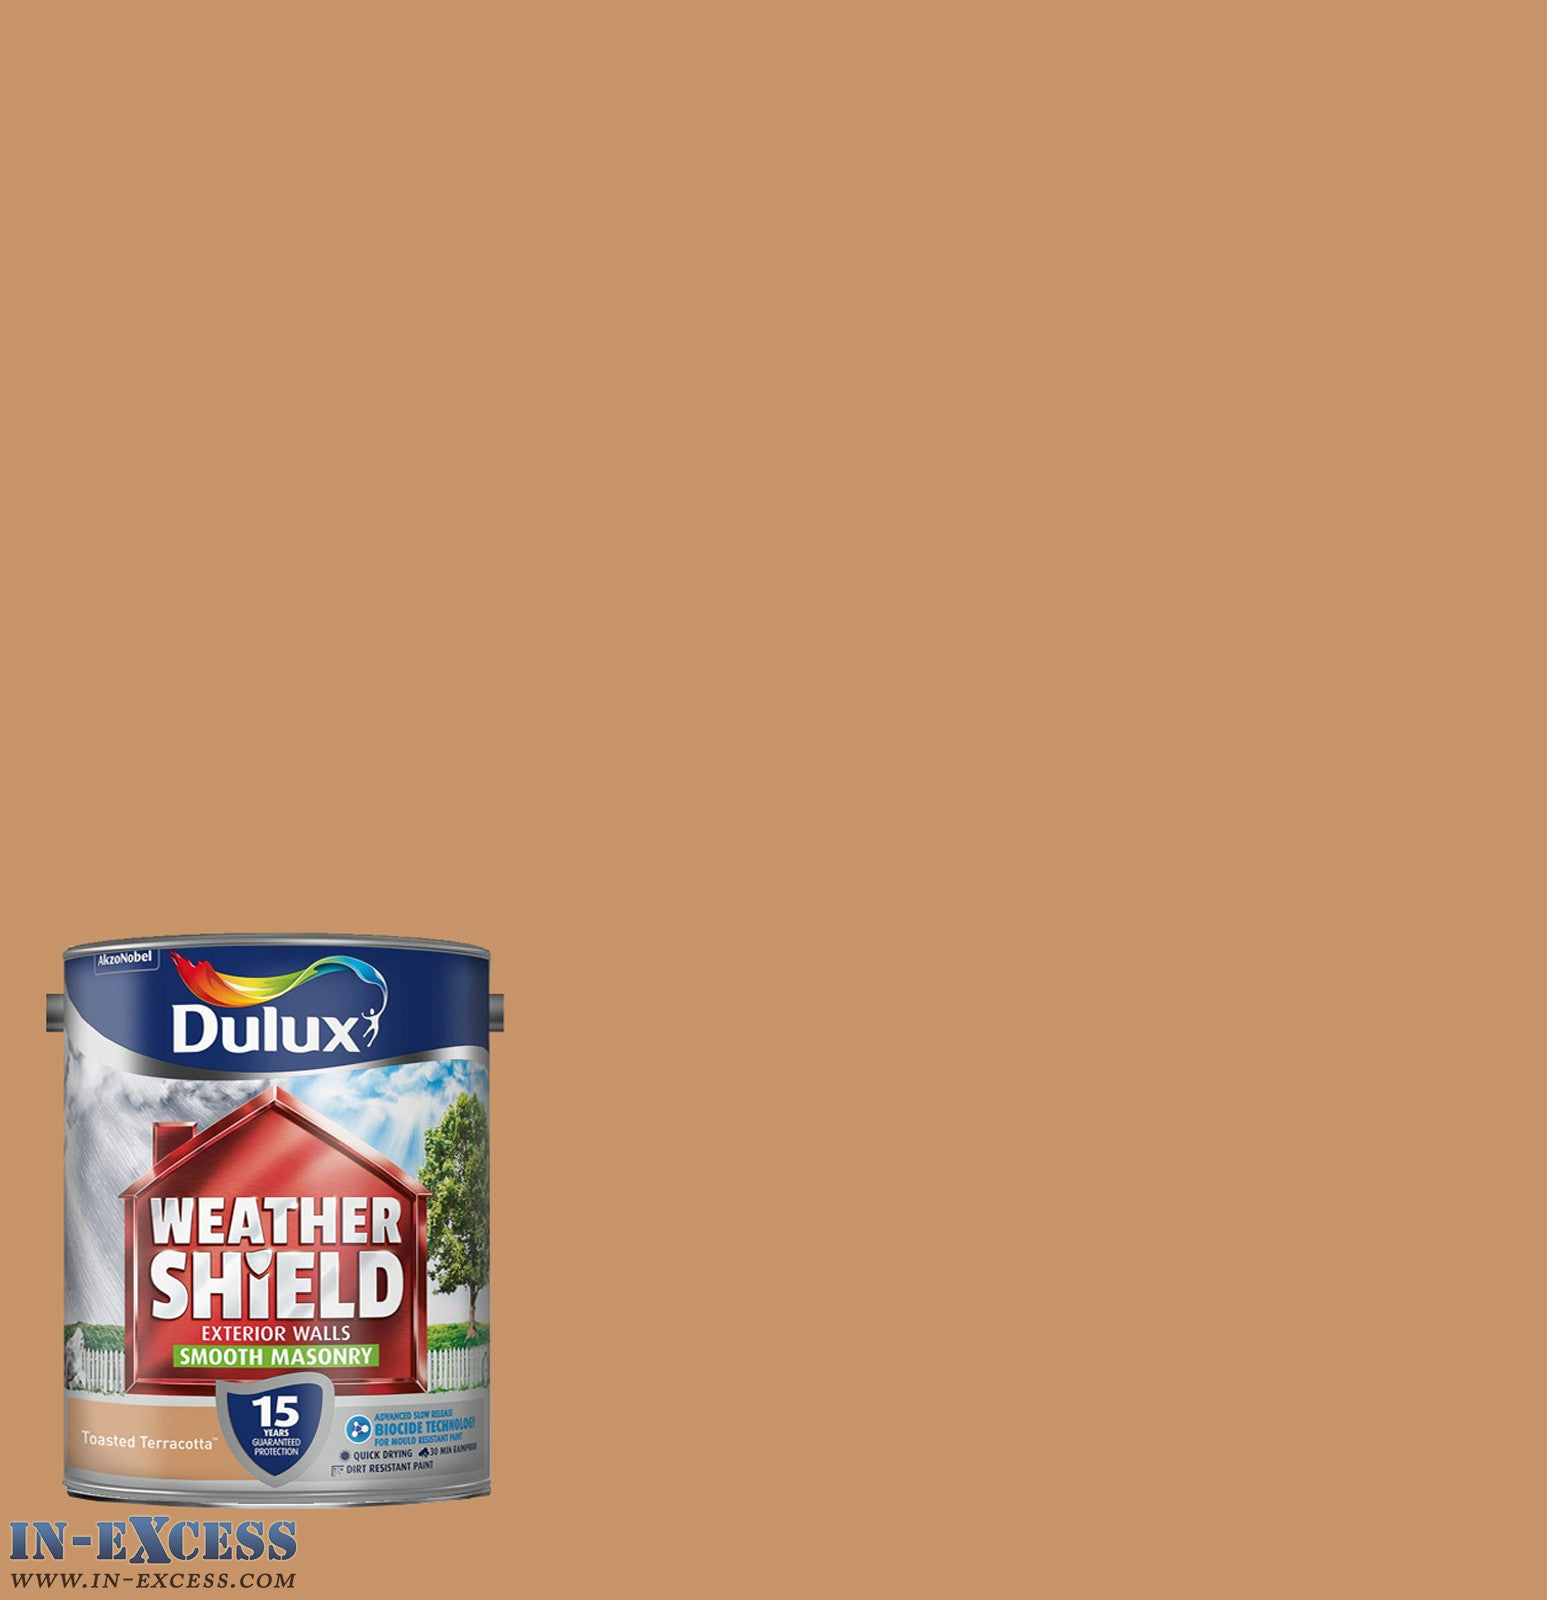 dulux weather shield exterior walls masonry paint smooth toasted terracotta 5 litre - Terracotta Wall Paint